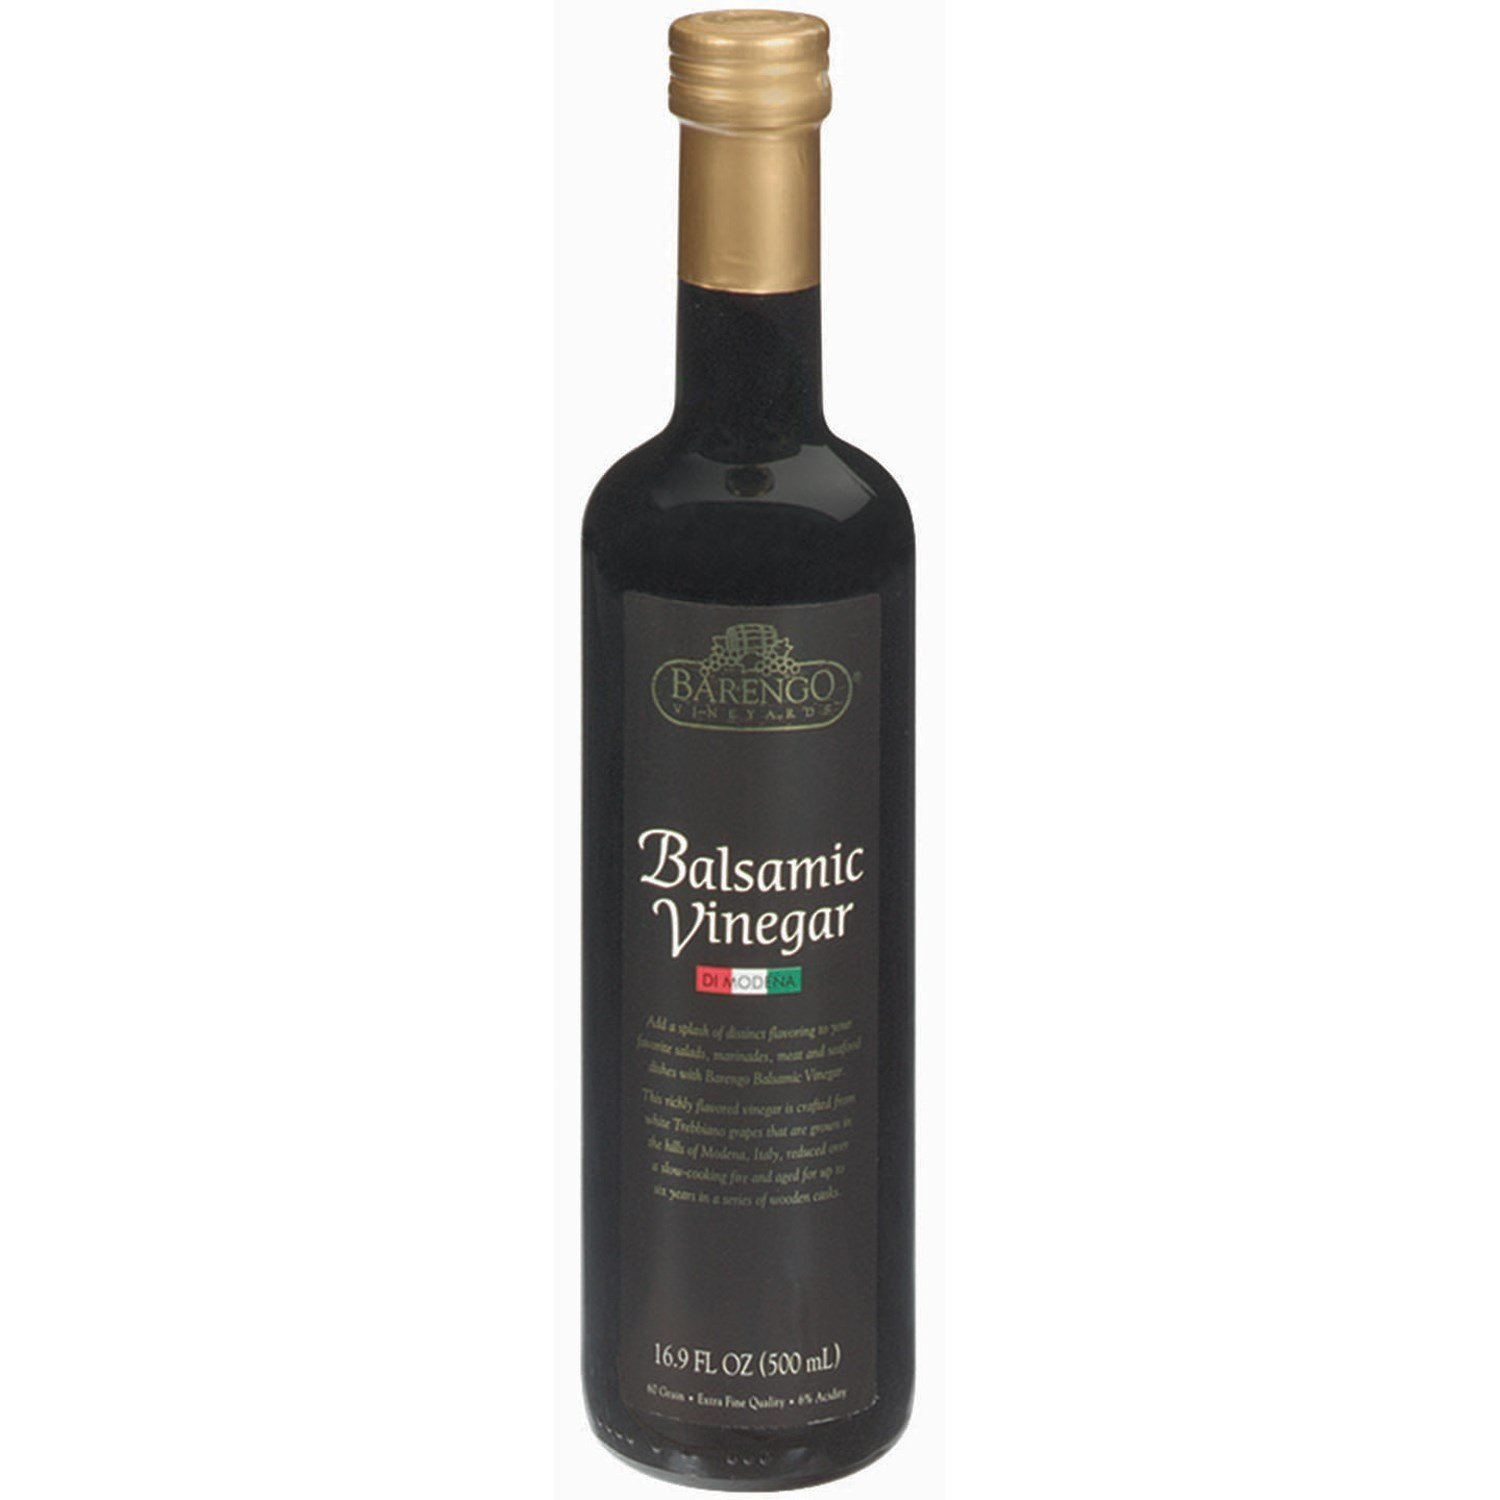 Barengo Balsamic Vinegar ( Pack of 2)